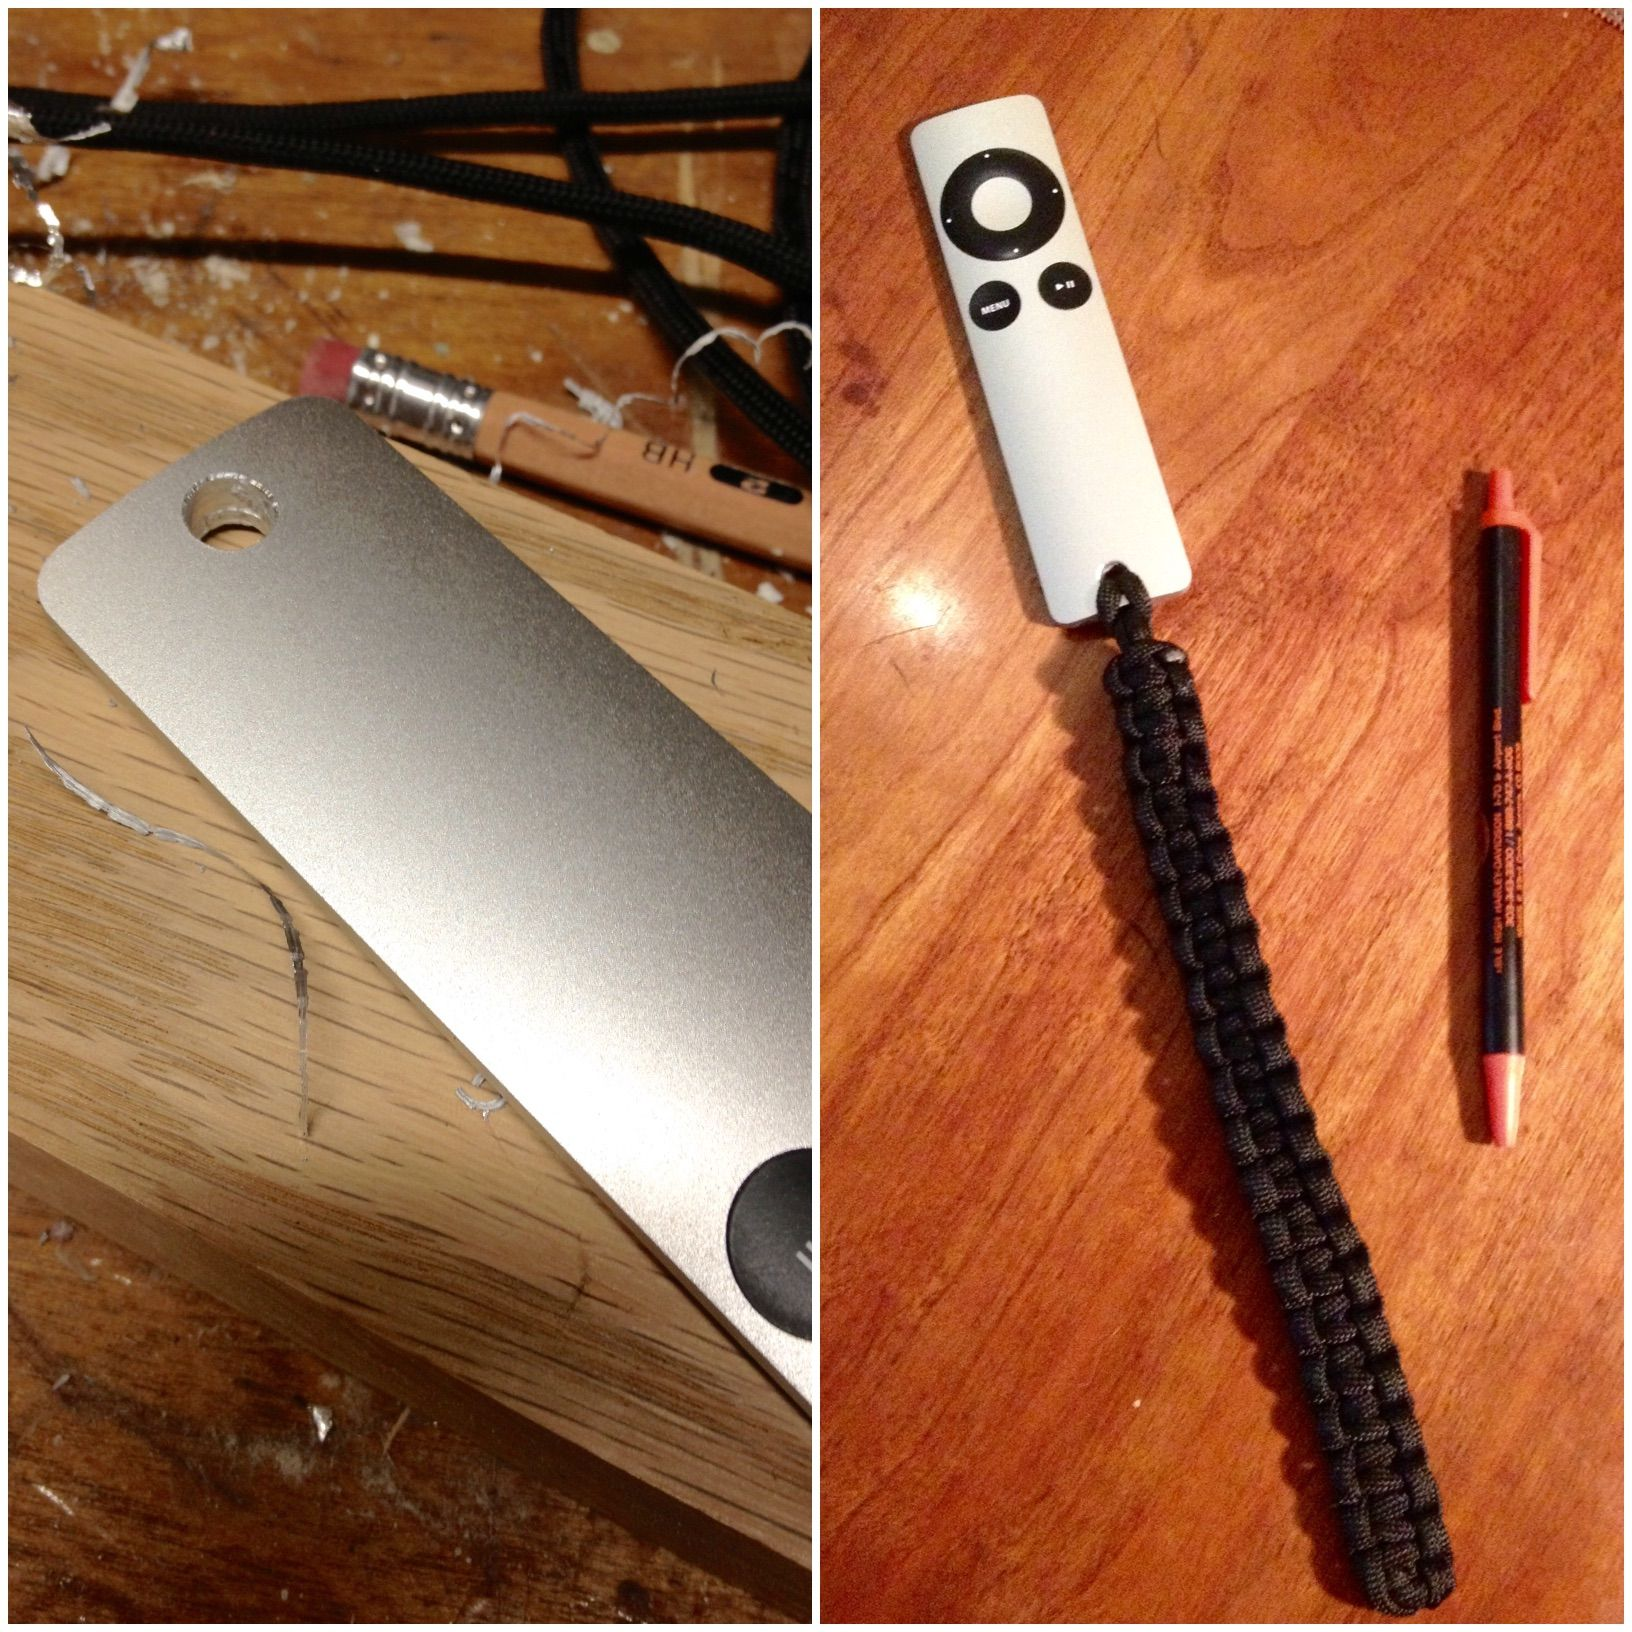 My FIL is a bit of a genius with this Apple TV Remote Hack  Drill a